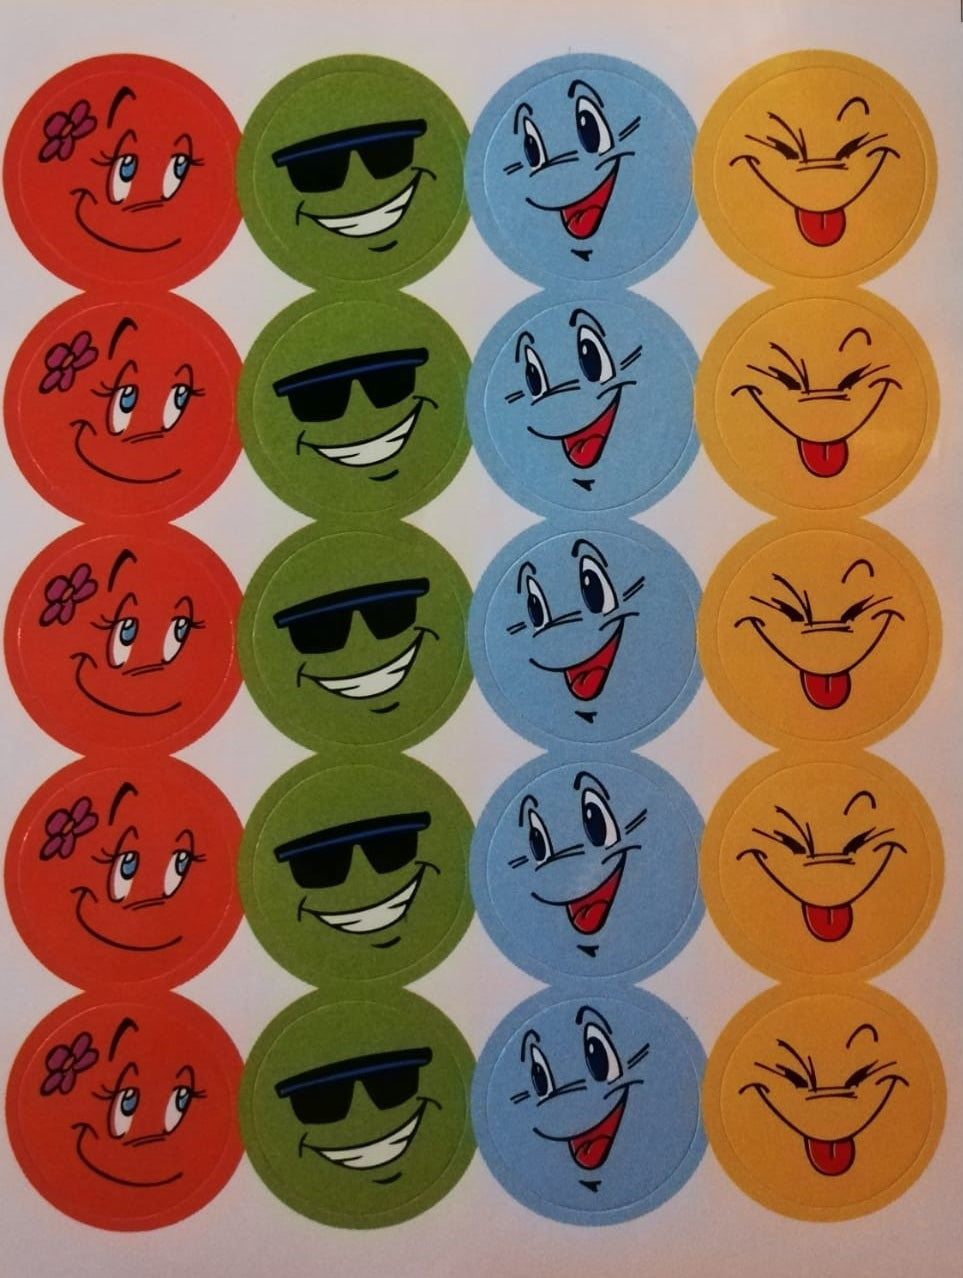 Stickers - Smiling Faces